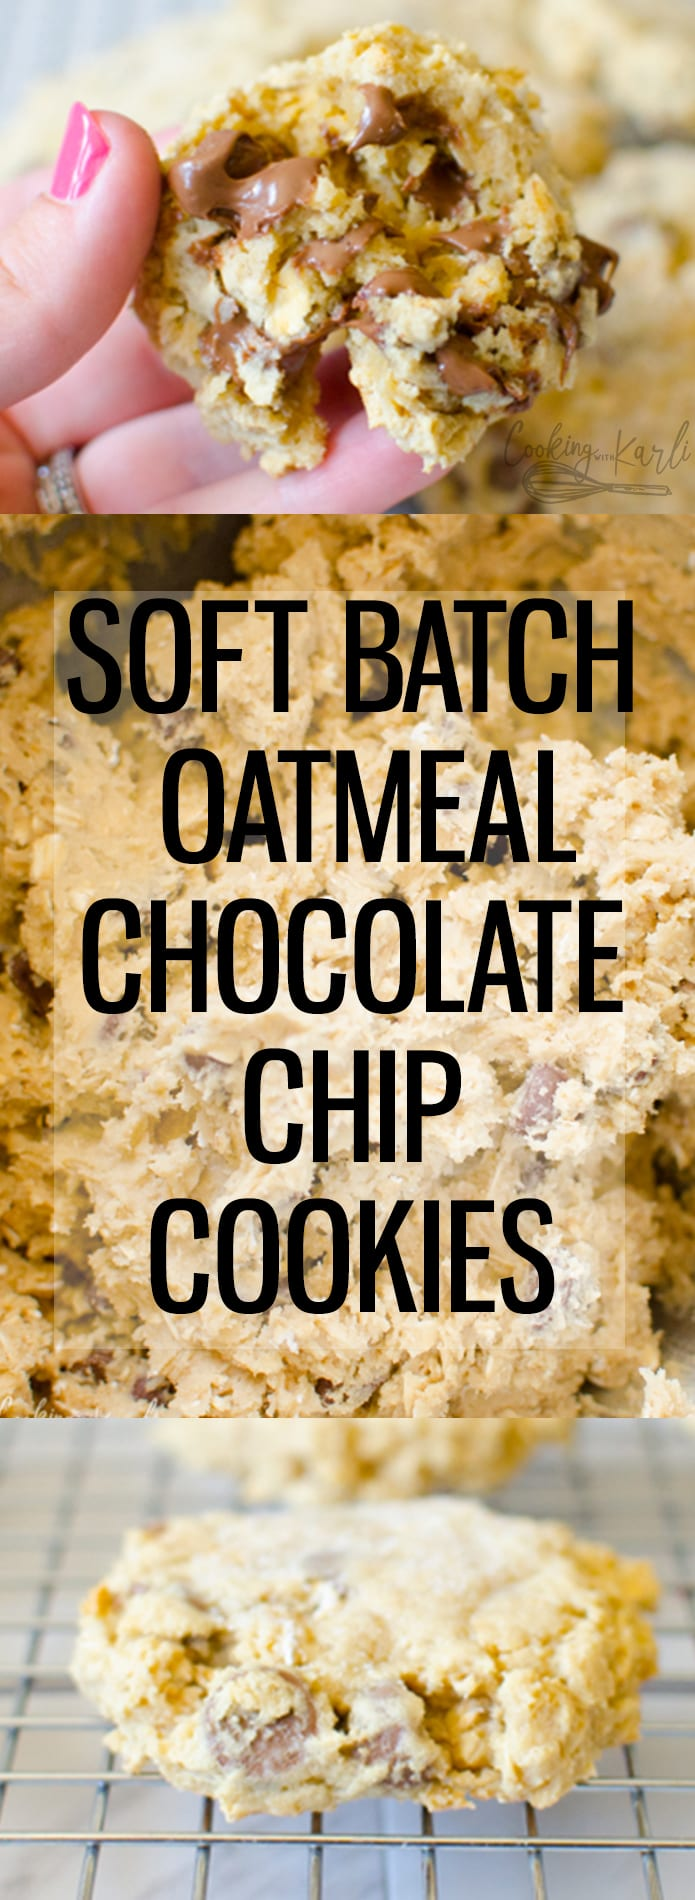 Soft Batch Oatmeal Chocolate Chip Cookies are soft, chewy and full of chocolate chips and that homey oat flavor. These cookies are a perfect comfort treat.. you might even think Grandma made them! |Cooking with Karli| #soft #softbatch #oatmealchocolatechipcookies #oatmeal #chocolatechip #cookies #chewy #grandmas #comfortdessert